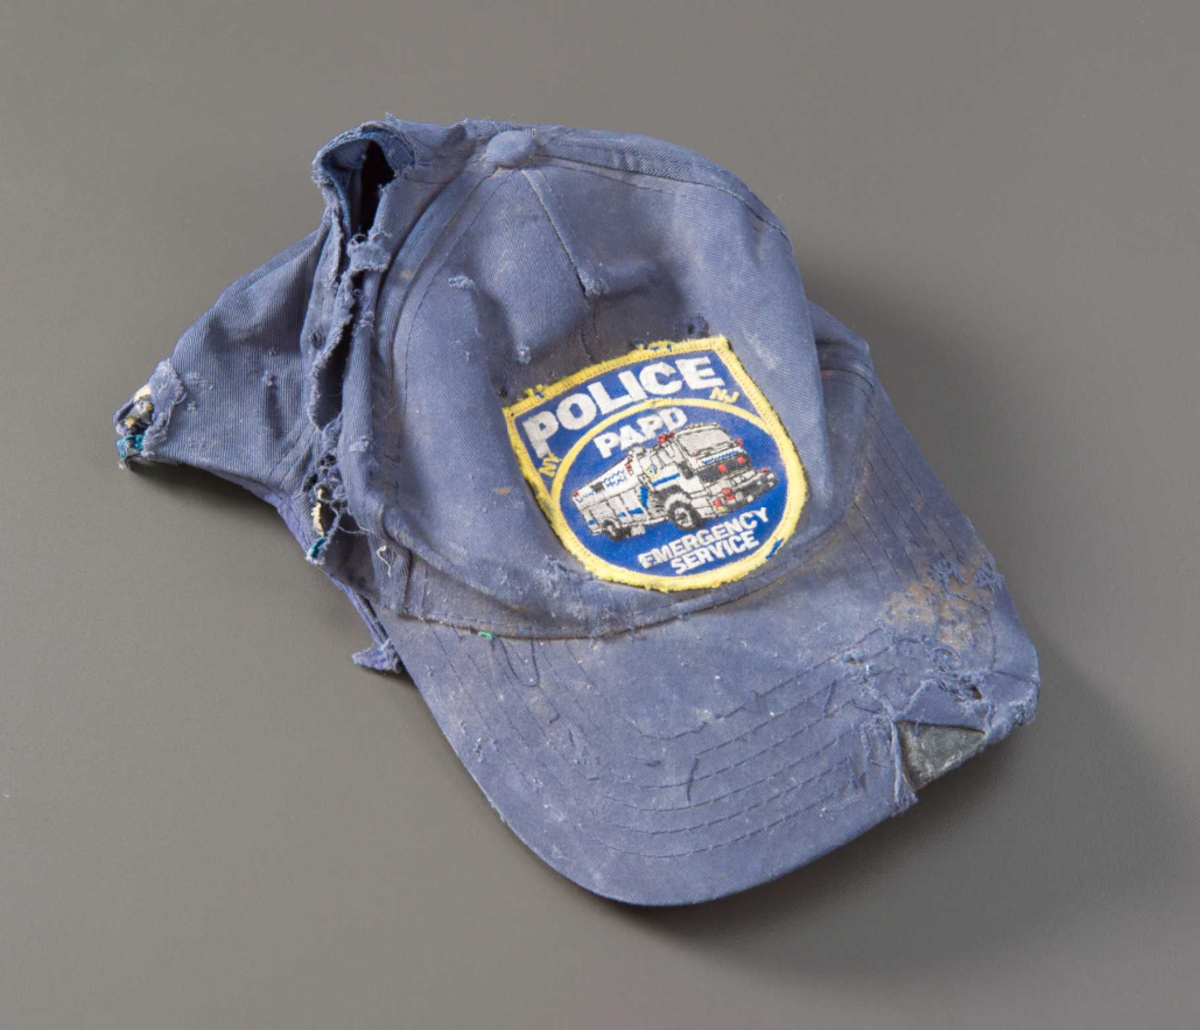 9/11 Attacks Artifacts from the 9/11 Memorial Museum